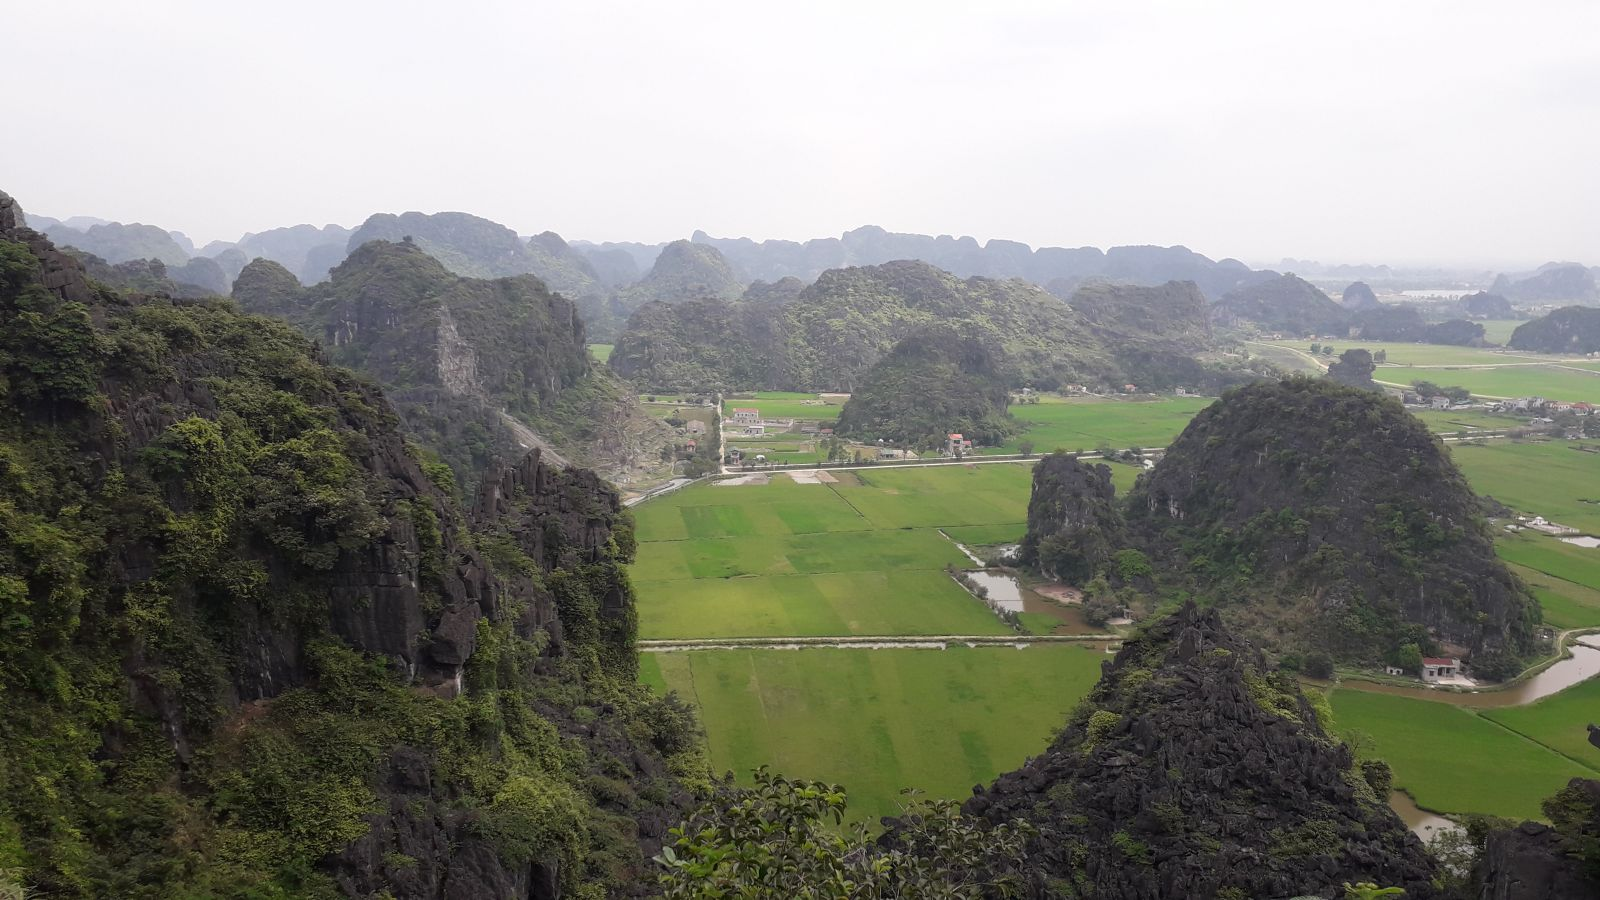 The view of Tuong Mountain